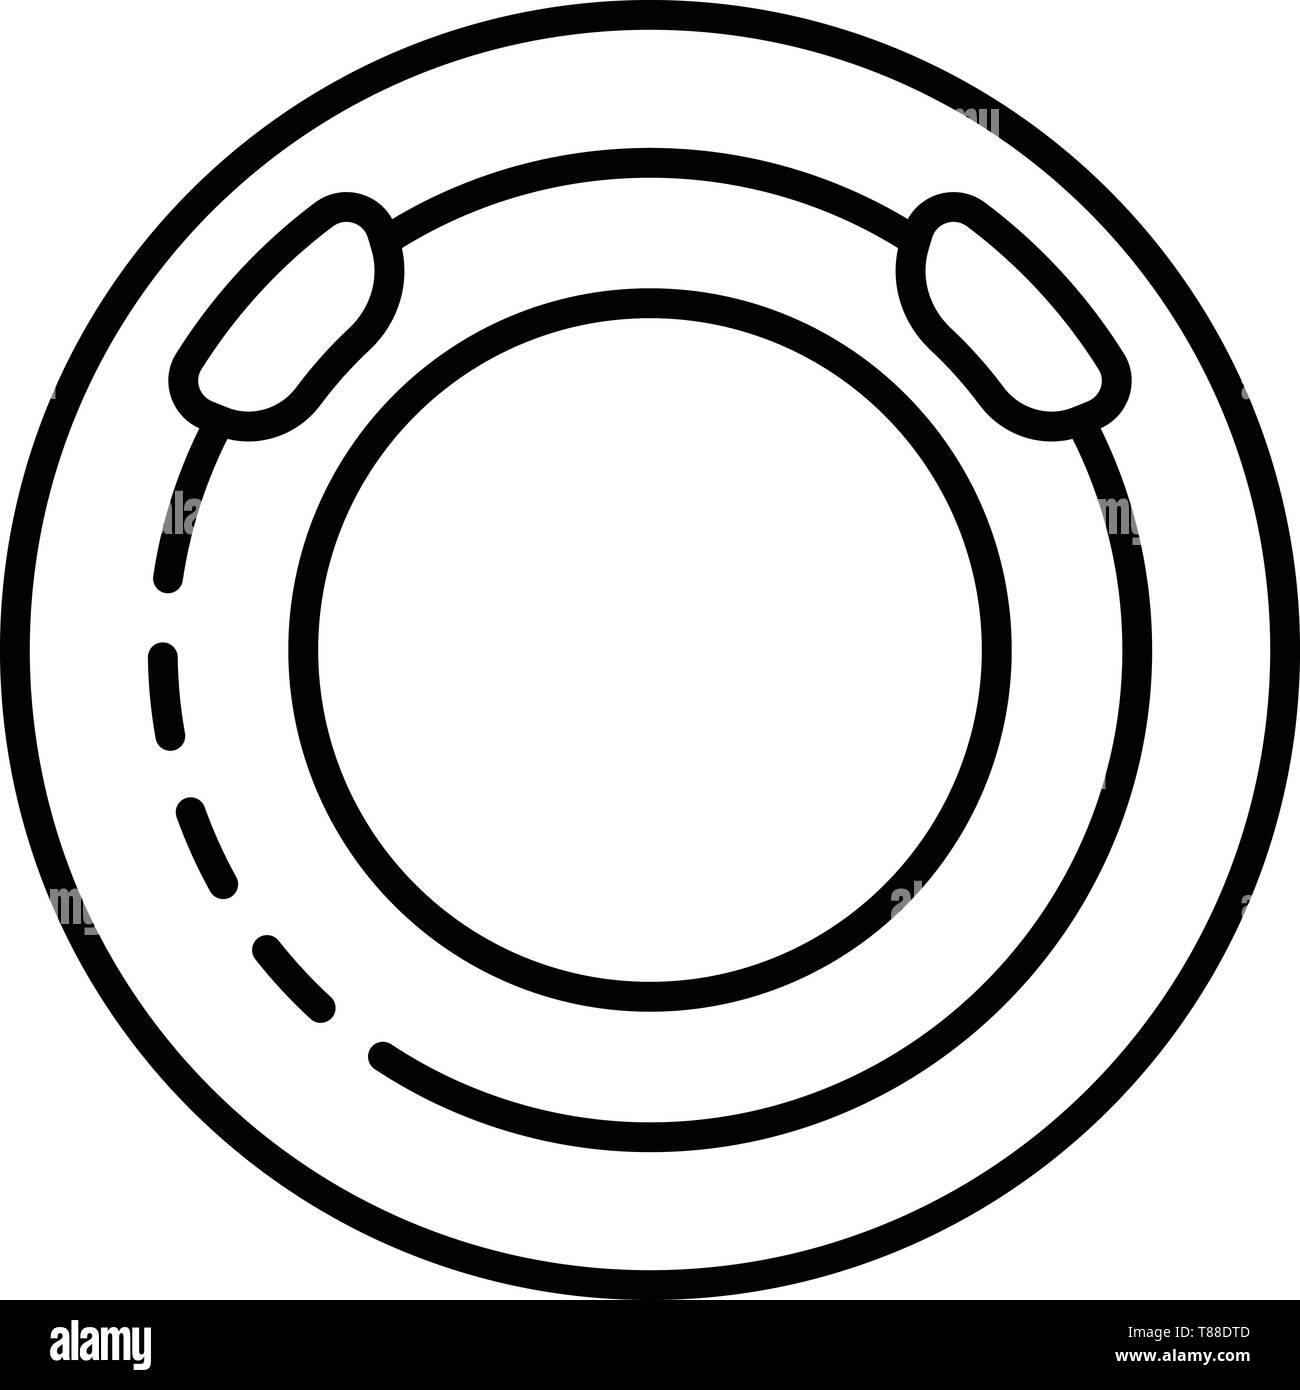 Round pool icon, outline style - Stock Image